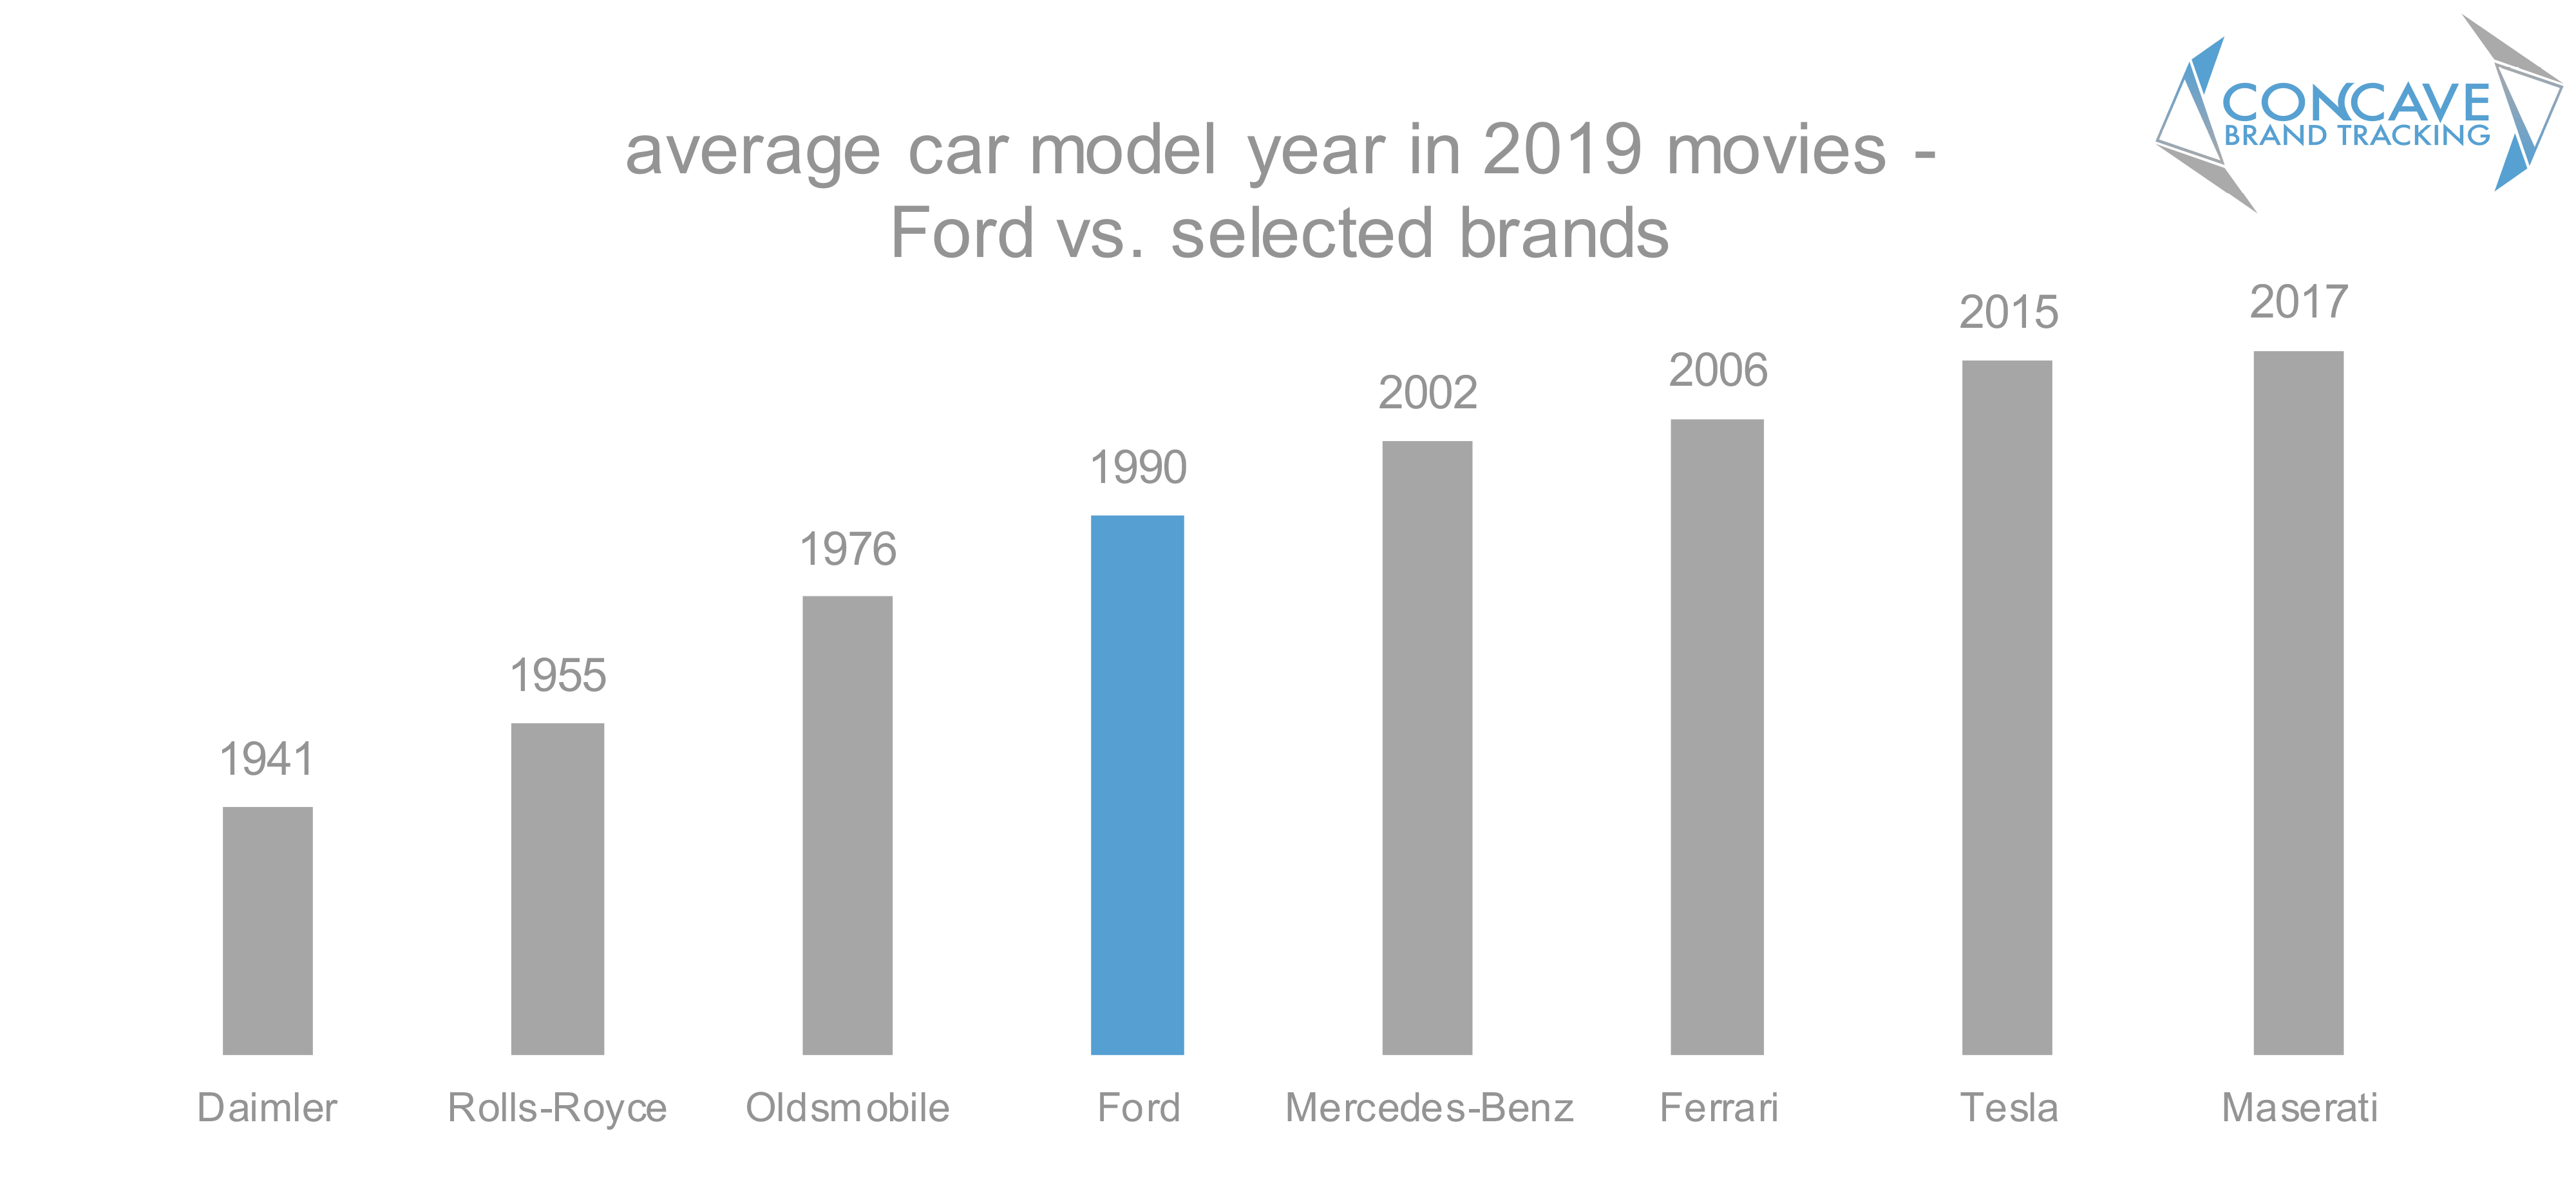 Concave brand tracking, product placement, brands, movies, entertainment marketing, branded integration, brand integration, integration marketing, analysis, valuation, metrics, measurement, concave, Ford, car model year, tesla, mercedes, oldsmobile, daimler, rolls royce